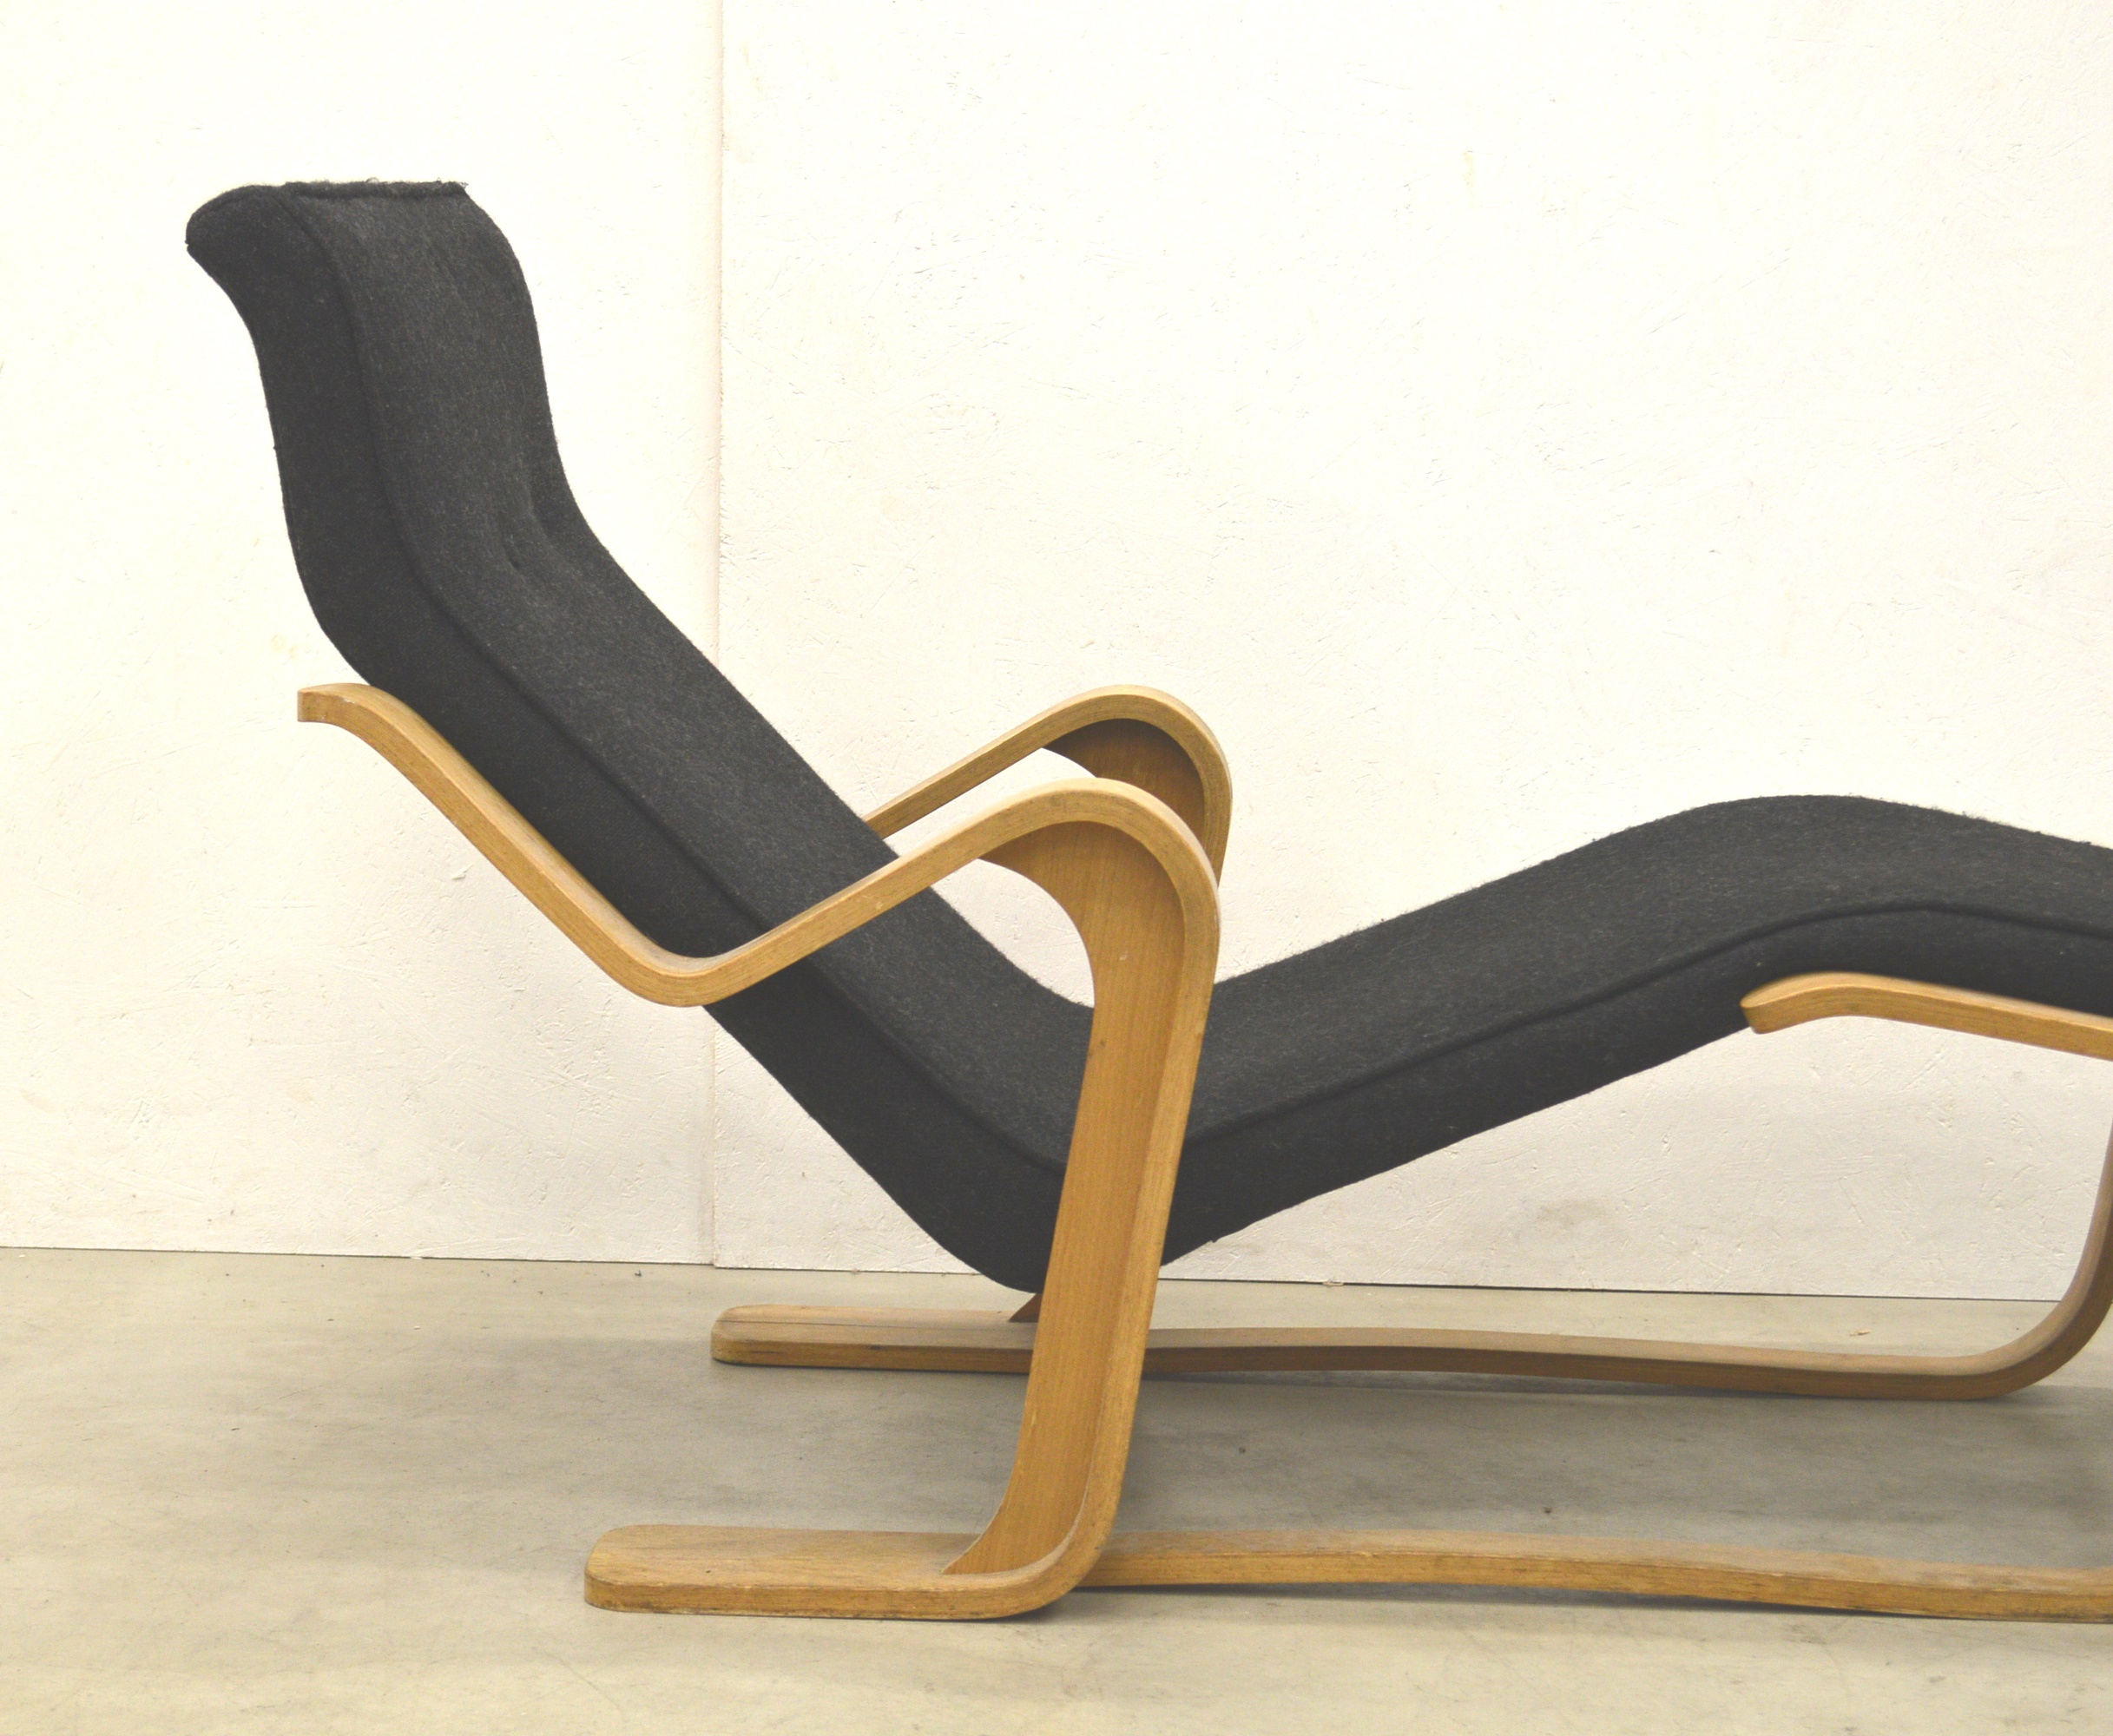 Marcel Breuer Chaise Longue by Isokon 40s | Interior Aksel